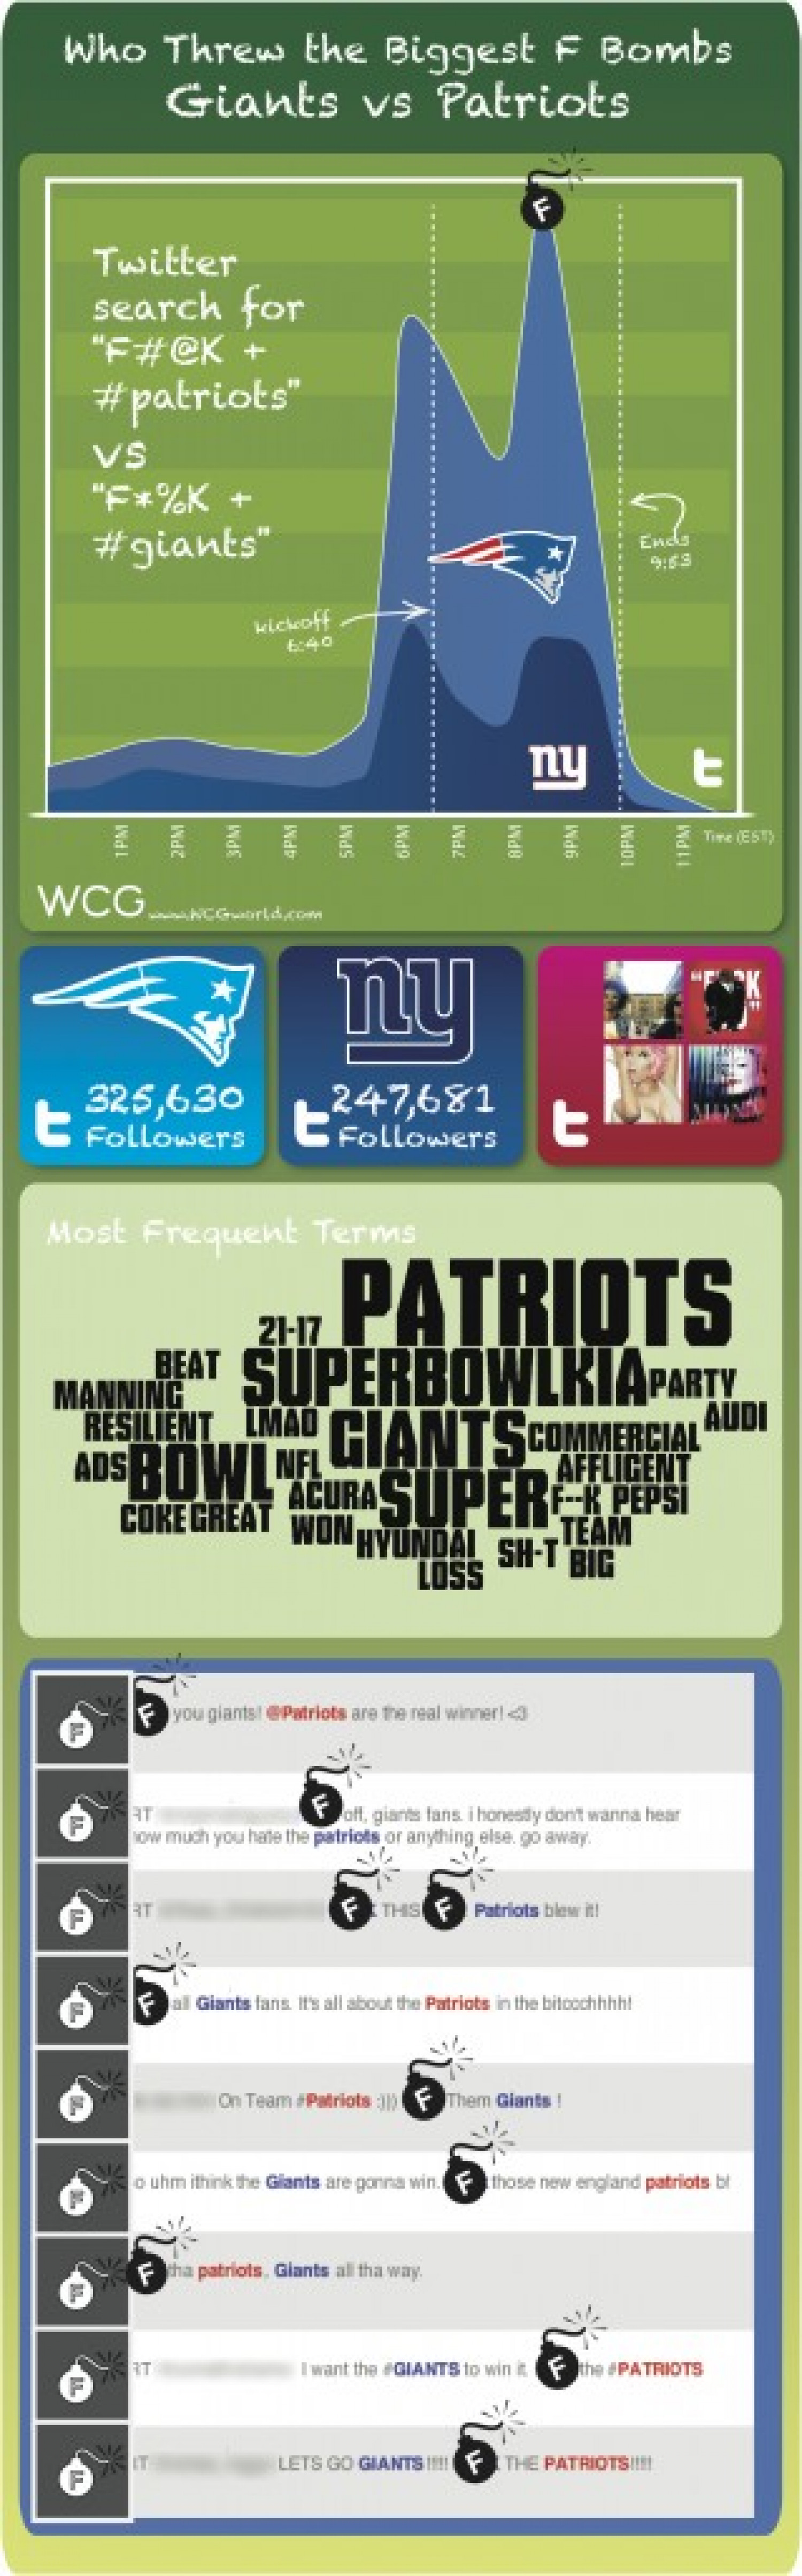 Throwing (F) Bombs: Some Lighthearted Super Bowl Analysis Infographic